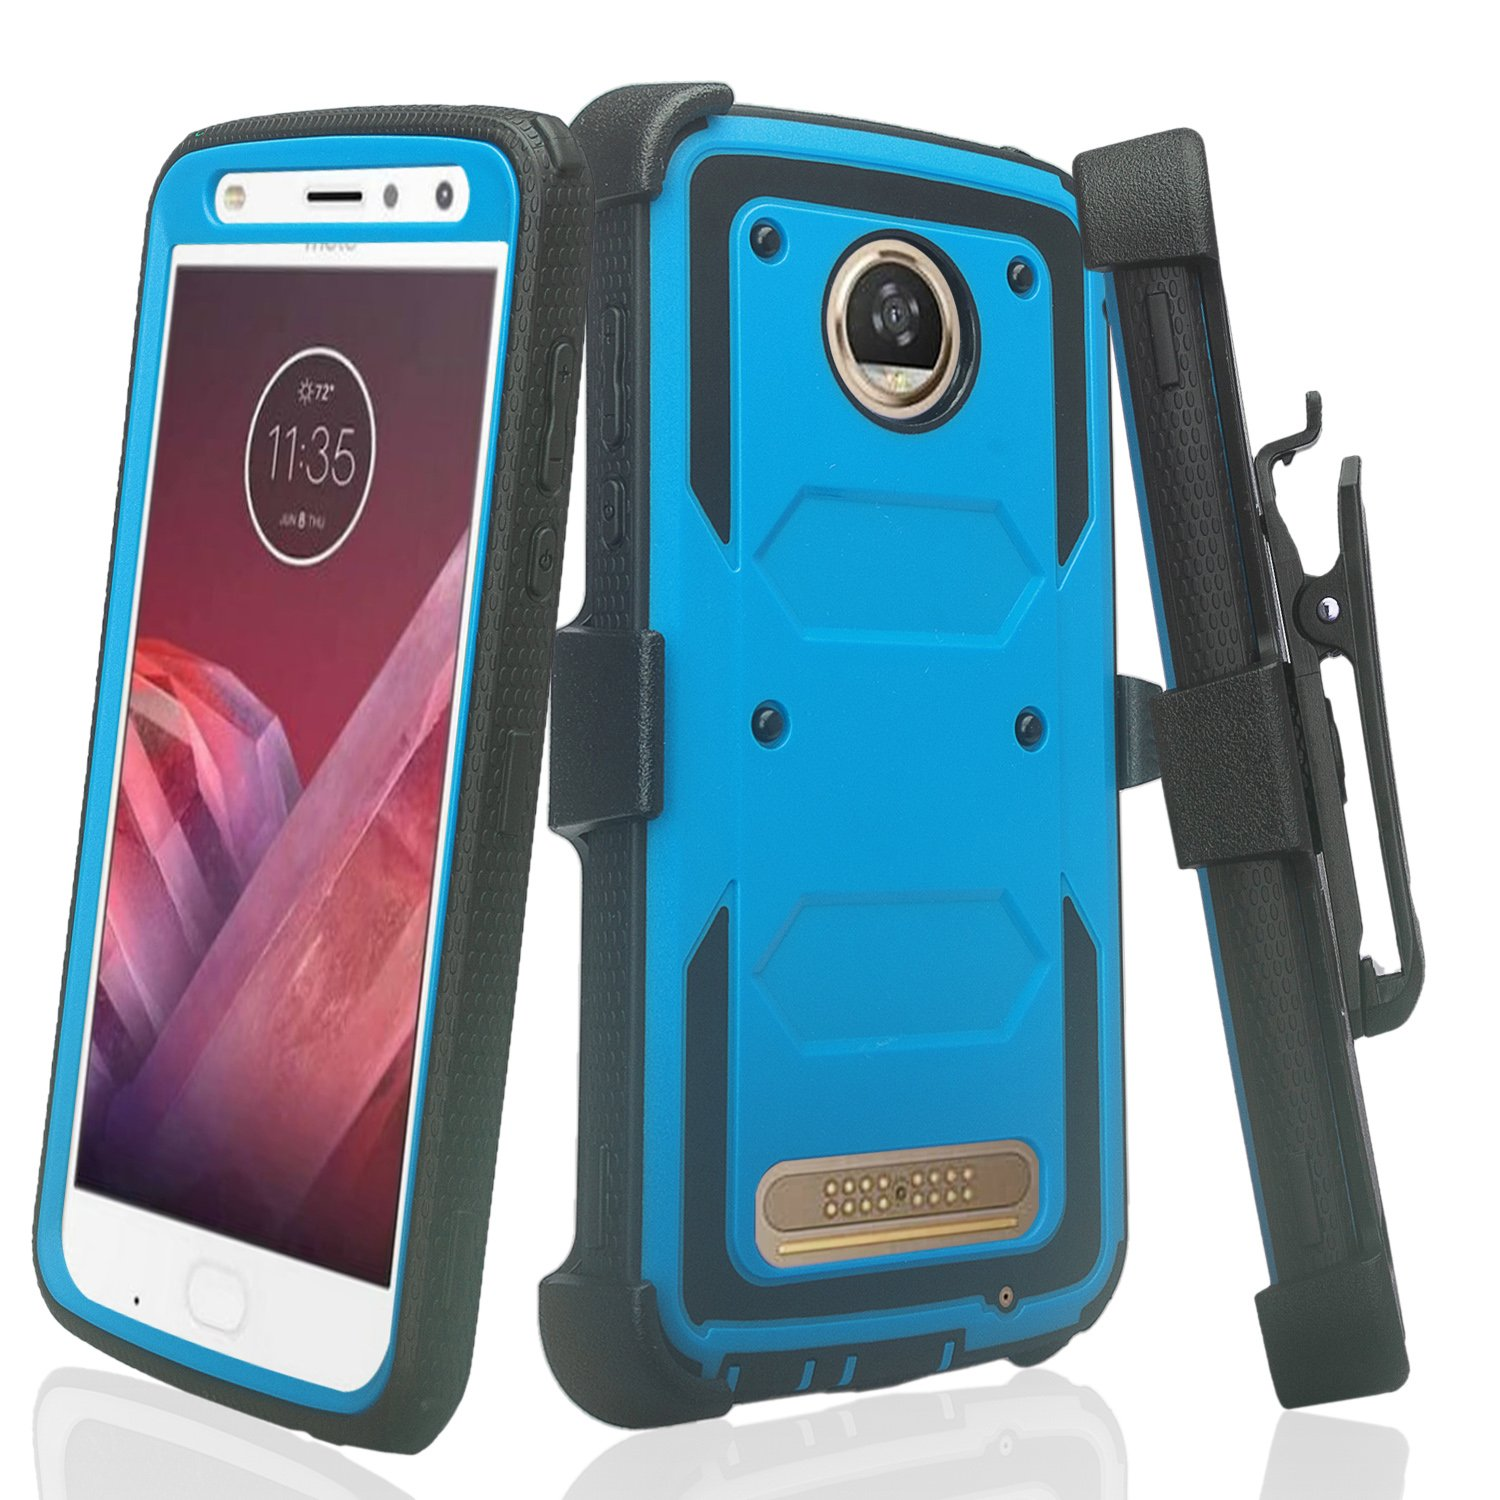 Motorola Moto Z2 Play, Moto Z2 Force, Rugged Full-Body [Built-in Screen Protector] Heavy Duty Holster Shell Combo Case for Z Force 2, Z Play 2 - Blue